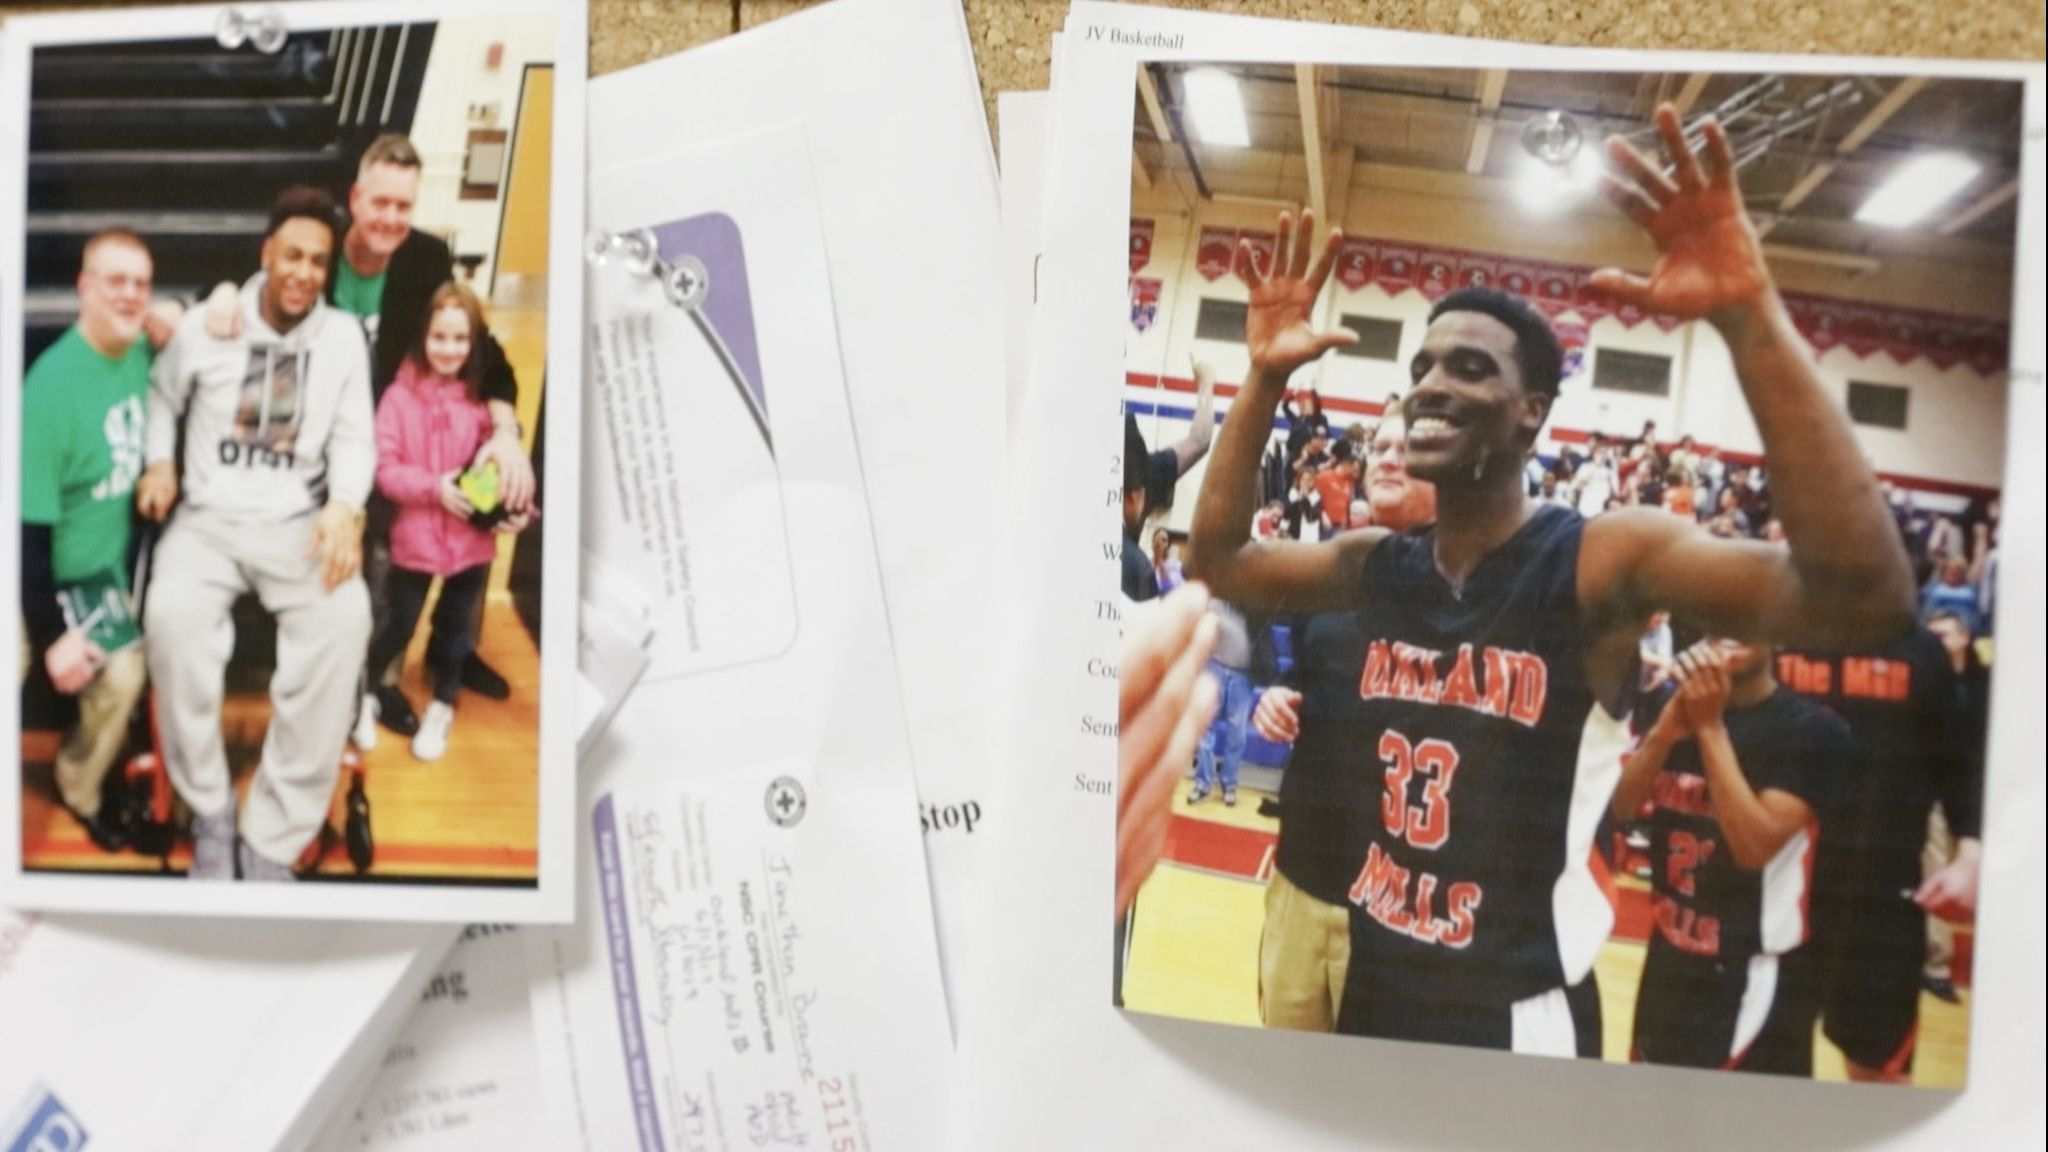 Photos of Larry Aaron III, left, and Kaiyon Stanfield